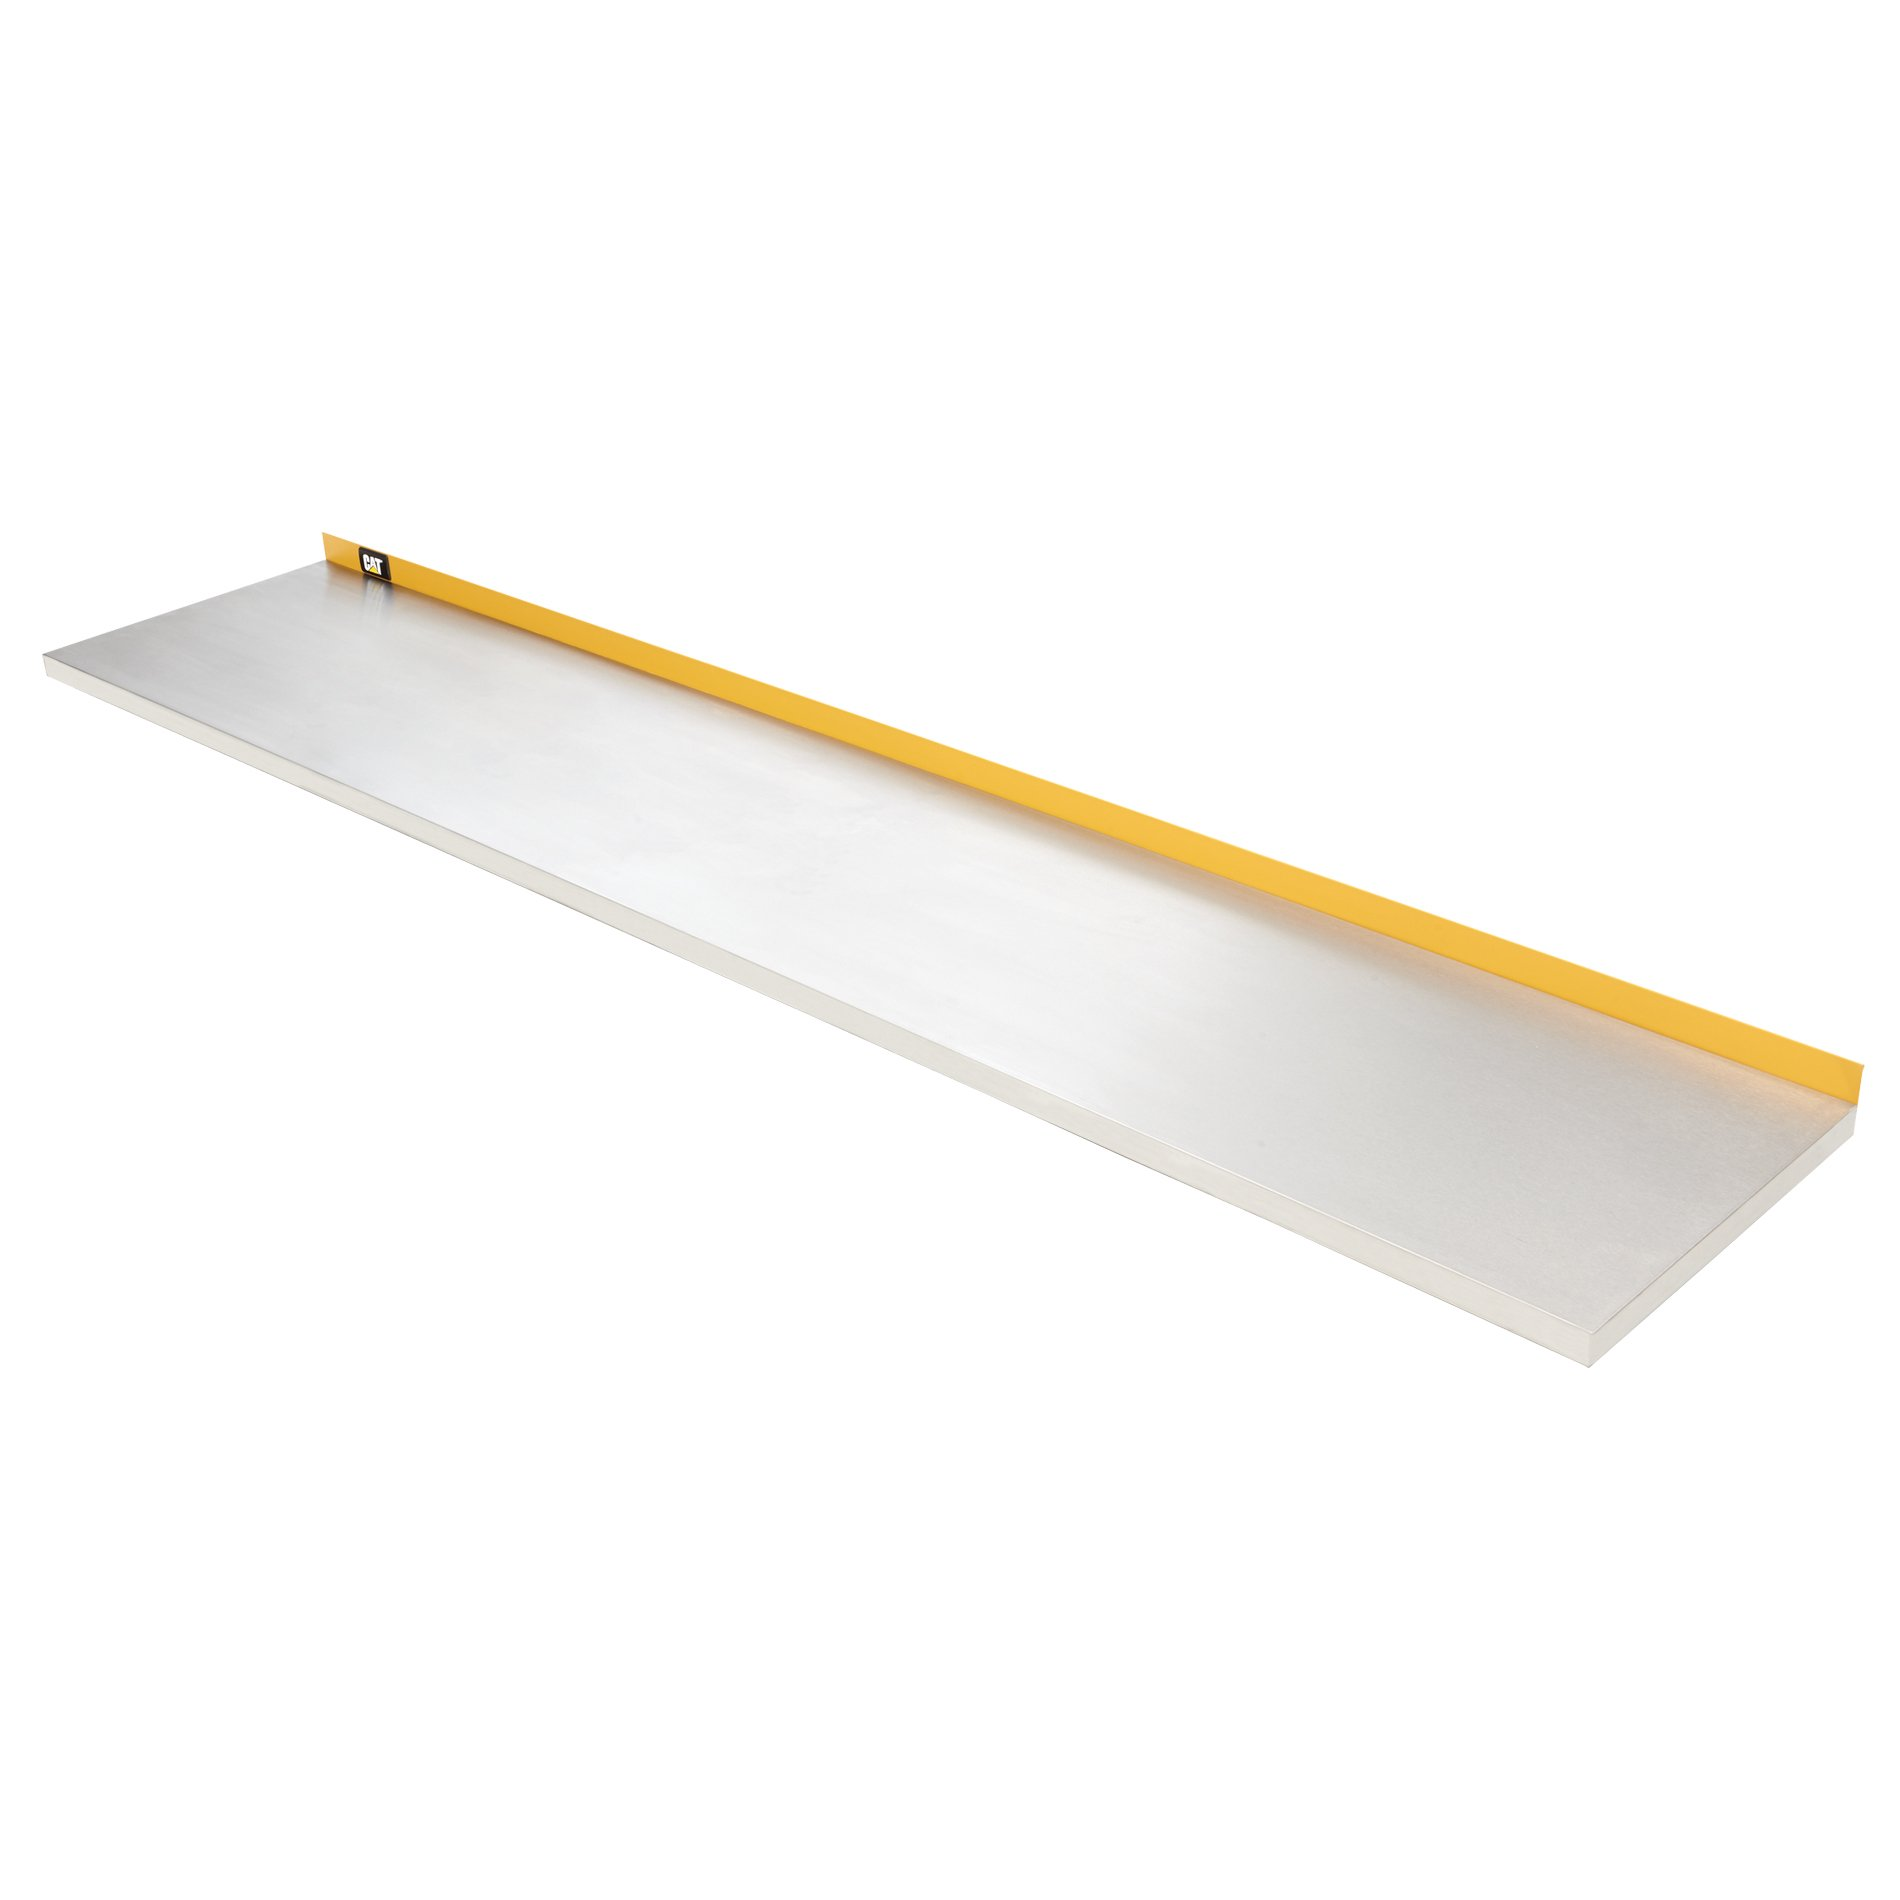 Cat 108'' Wide Stainless Steel Work Surface - Designed, Engineered & Assembled In the USA by Cat Tool Storage